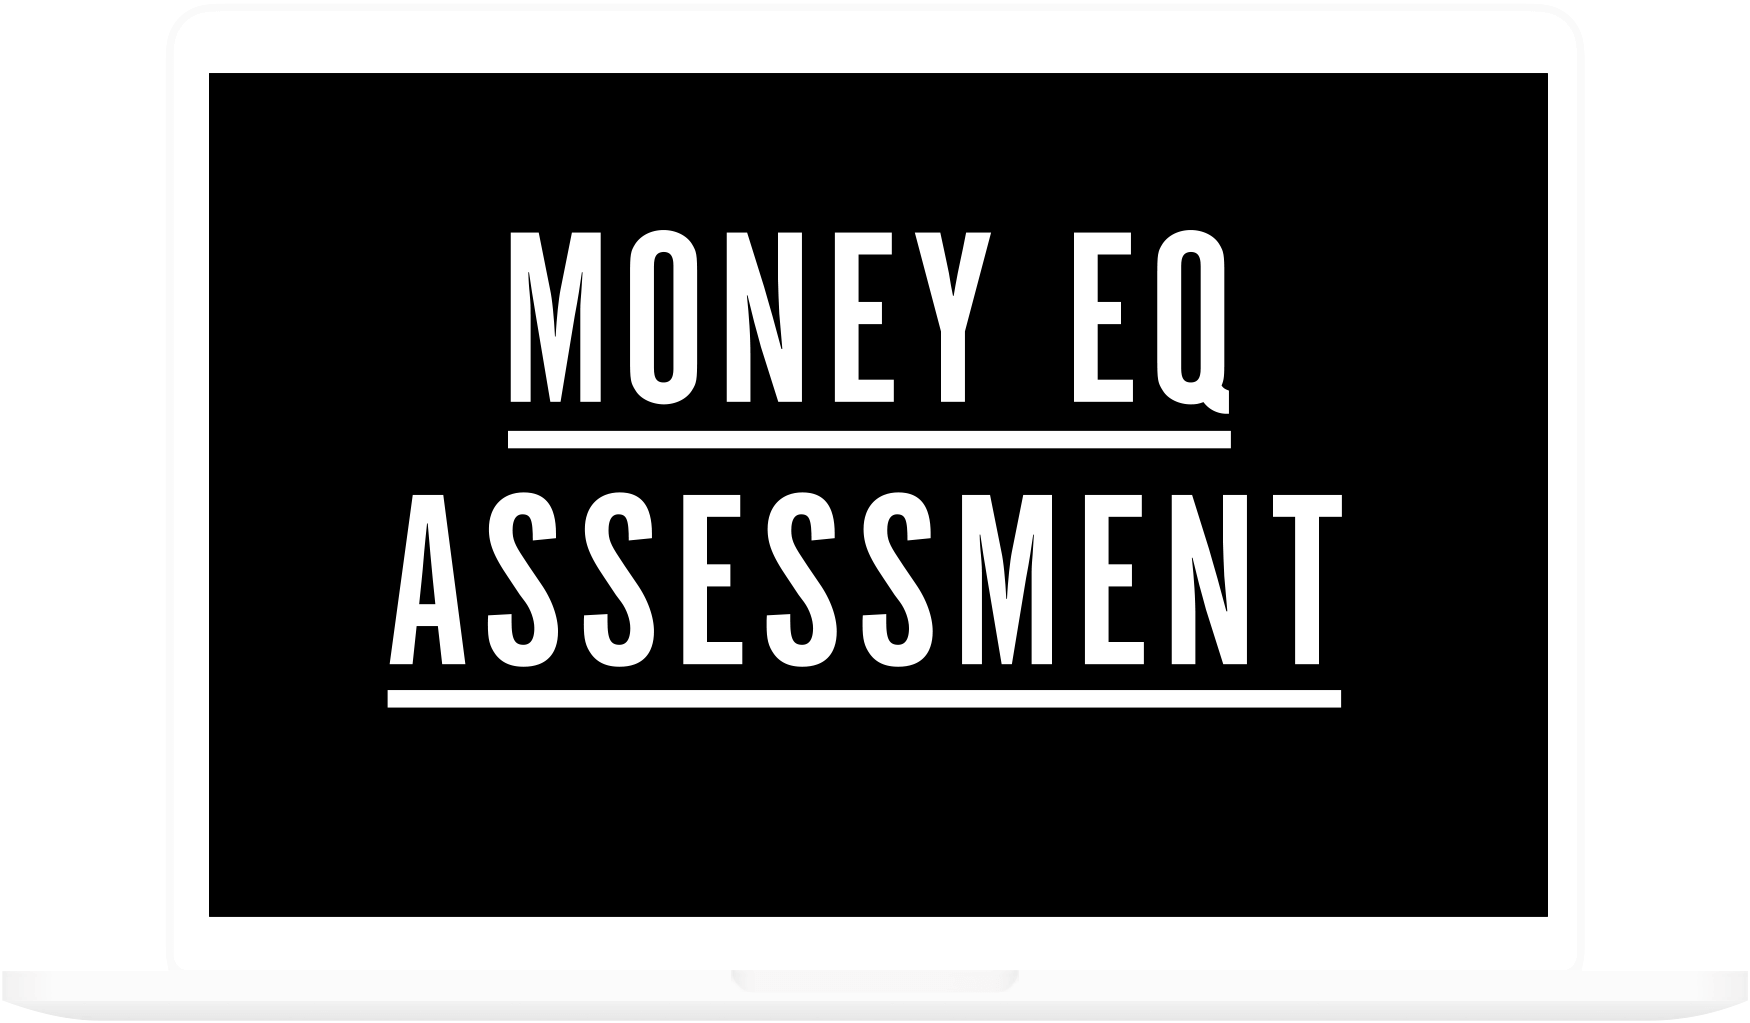 MONEY-EQ-ASSESSMENT